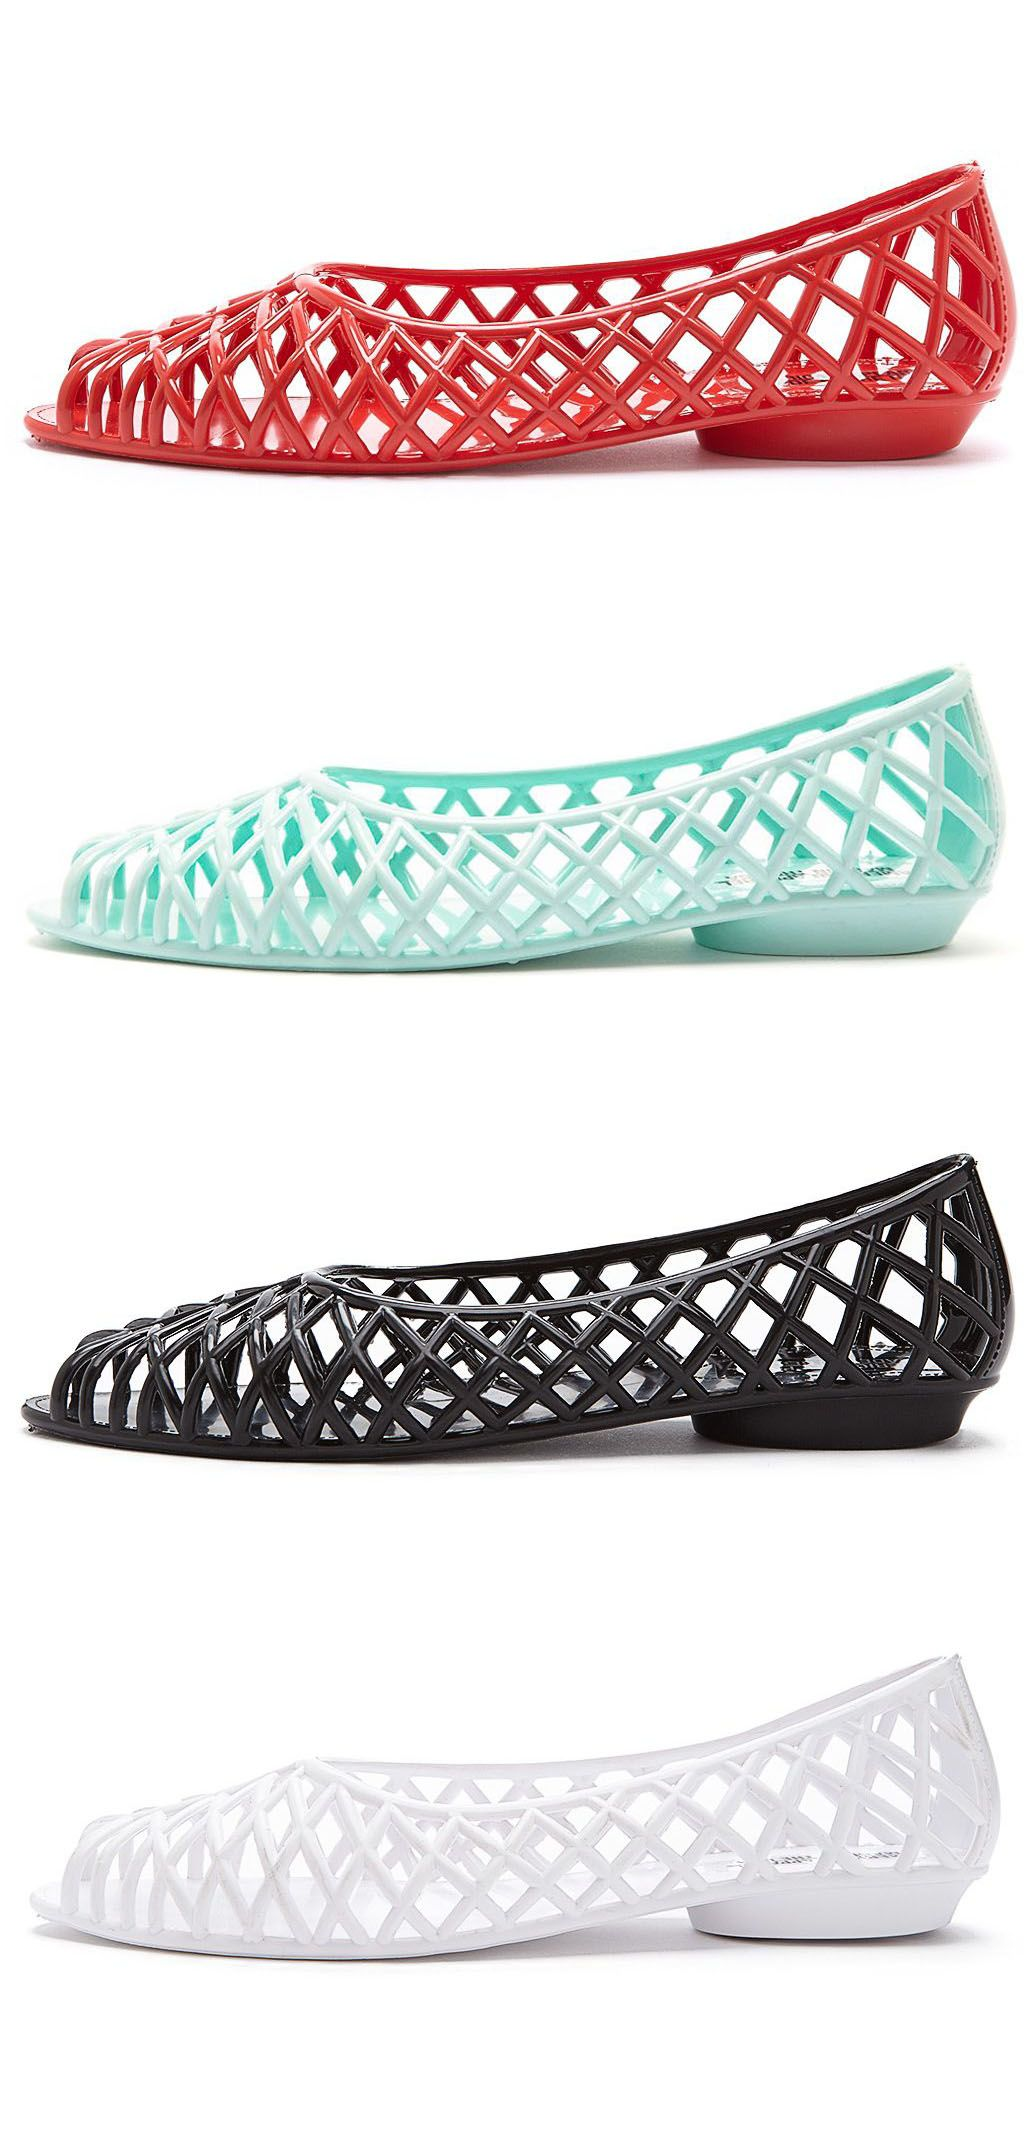 Black jelly sandals american apparel - From American Apparel Flat Lattice Jelly Sandal I Had To Think Where To Pin This On The